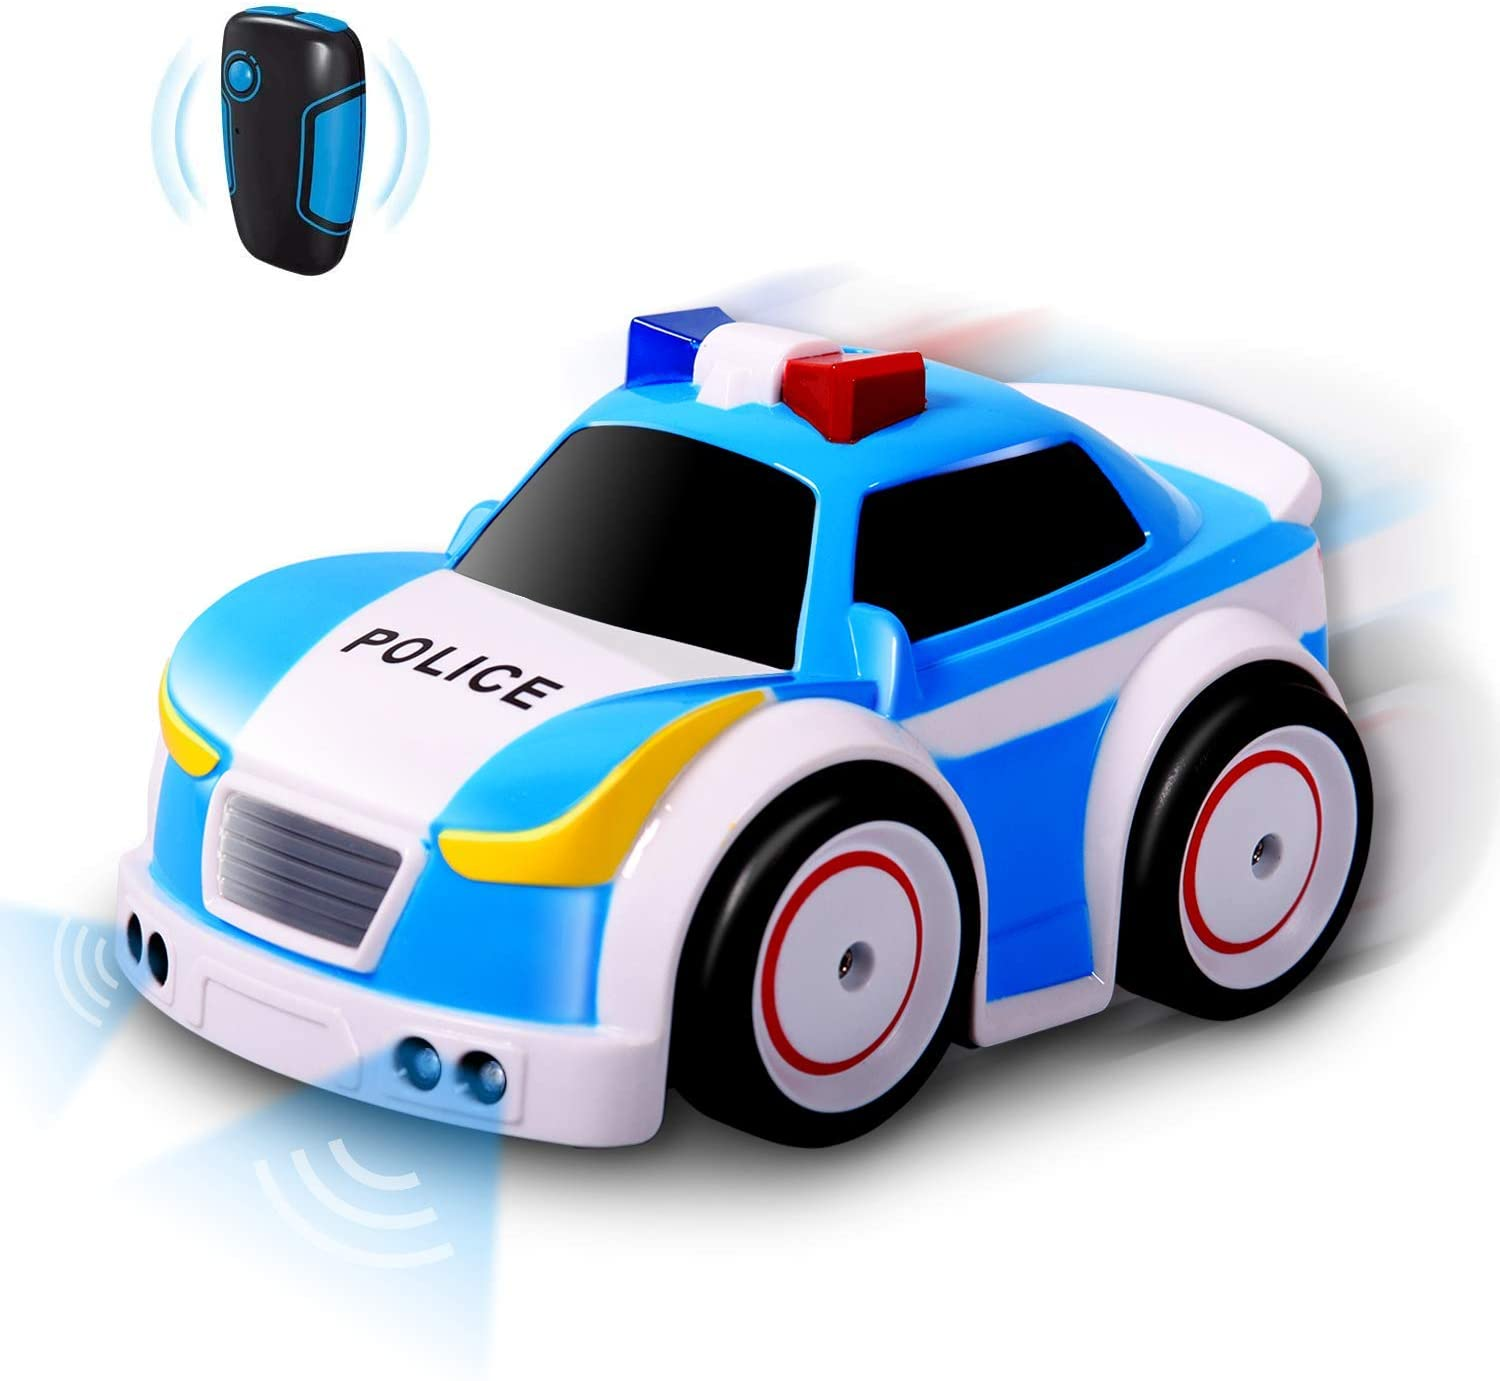 tonason Remote Control Police Toy Car 2.4GHz Motion Gravity Four Modes with Obstacle Avoidance and Gravity Sensors